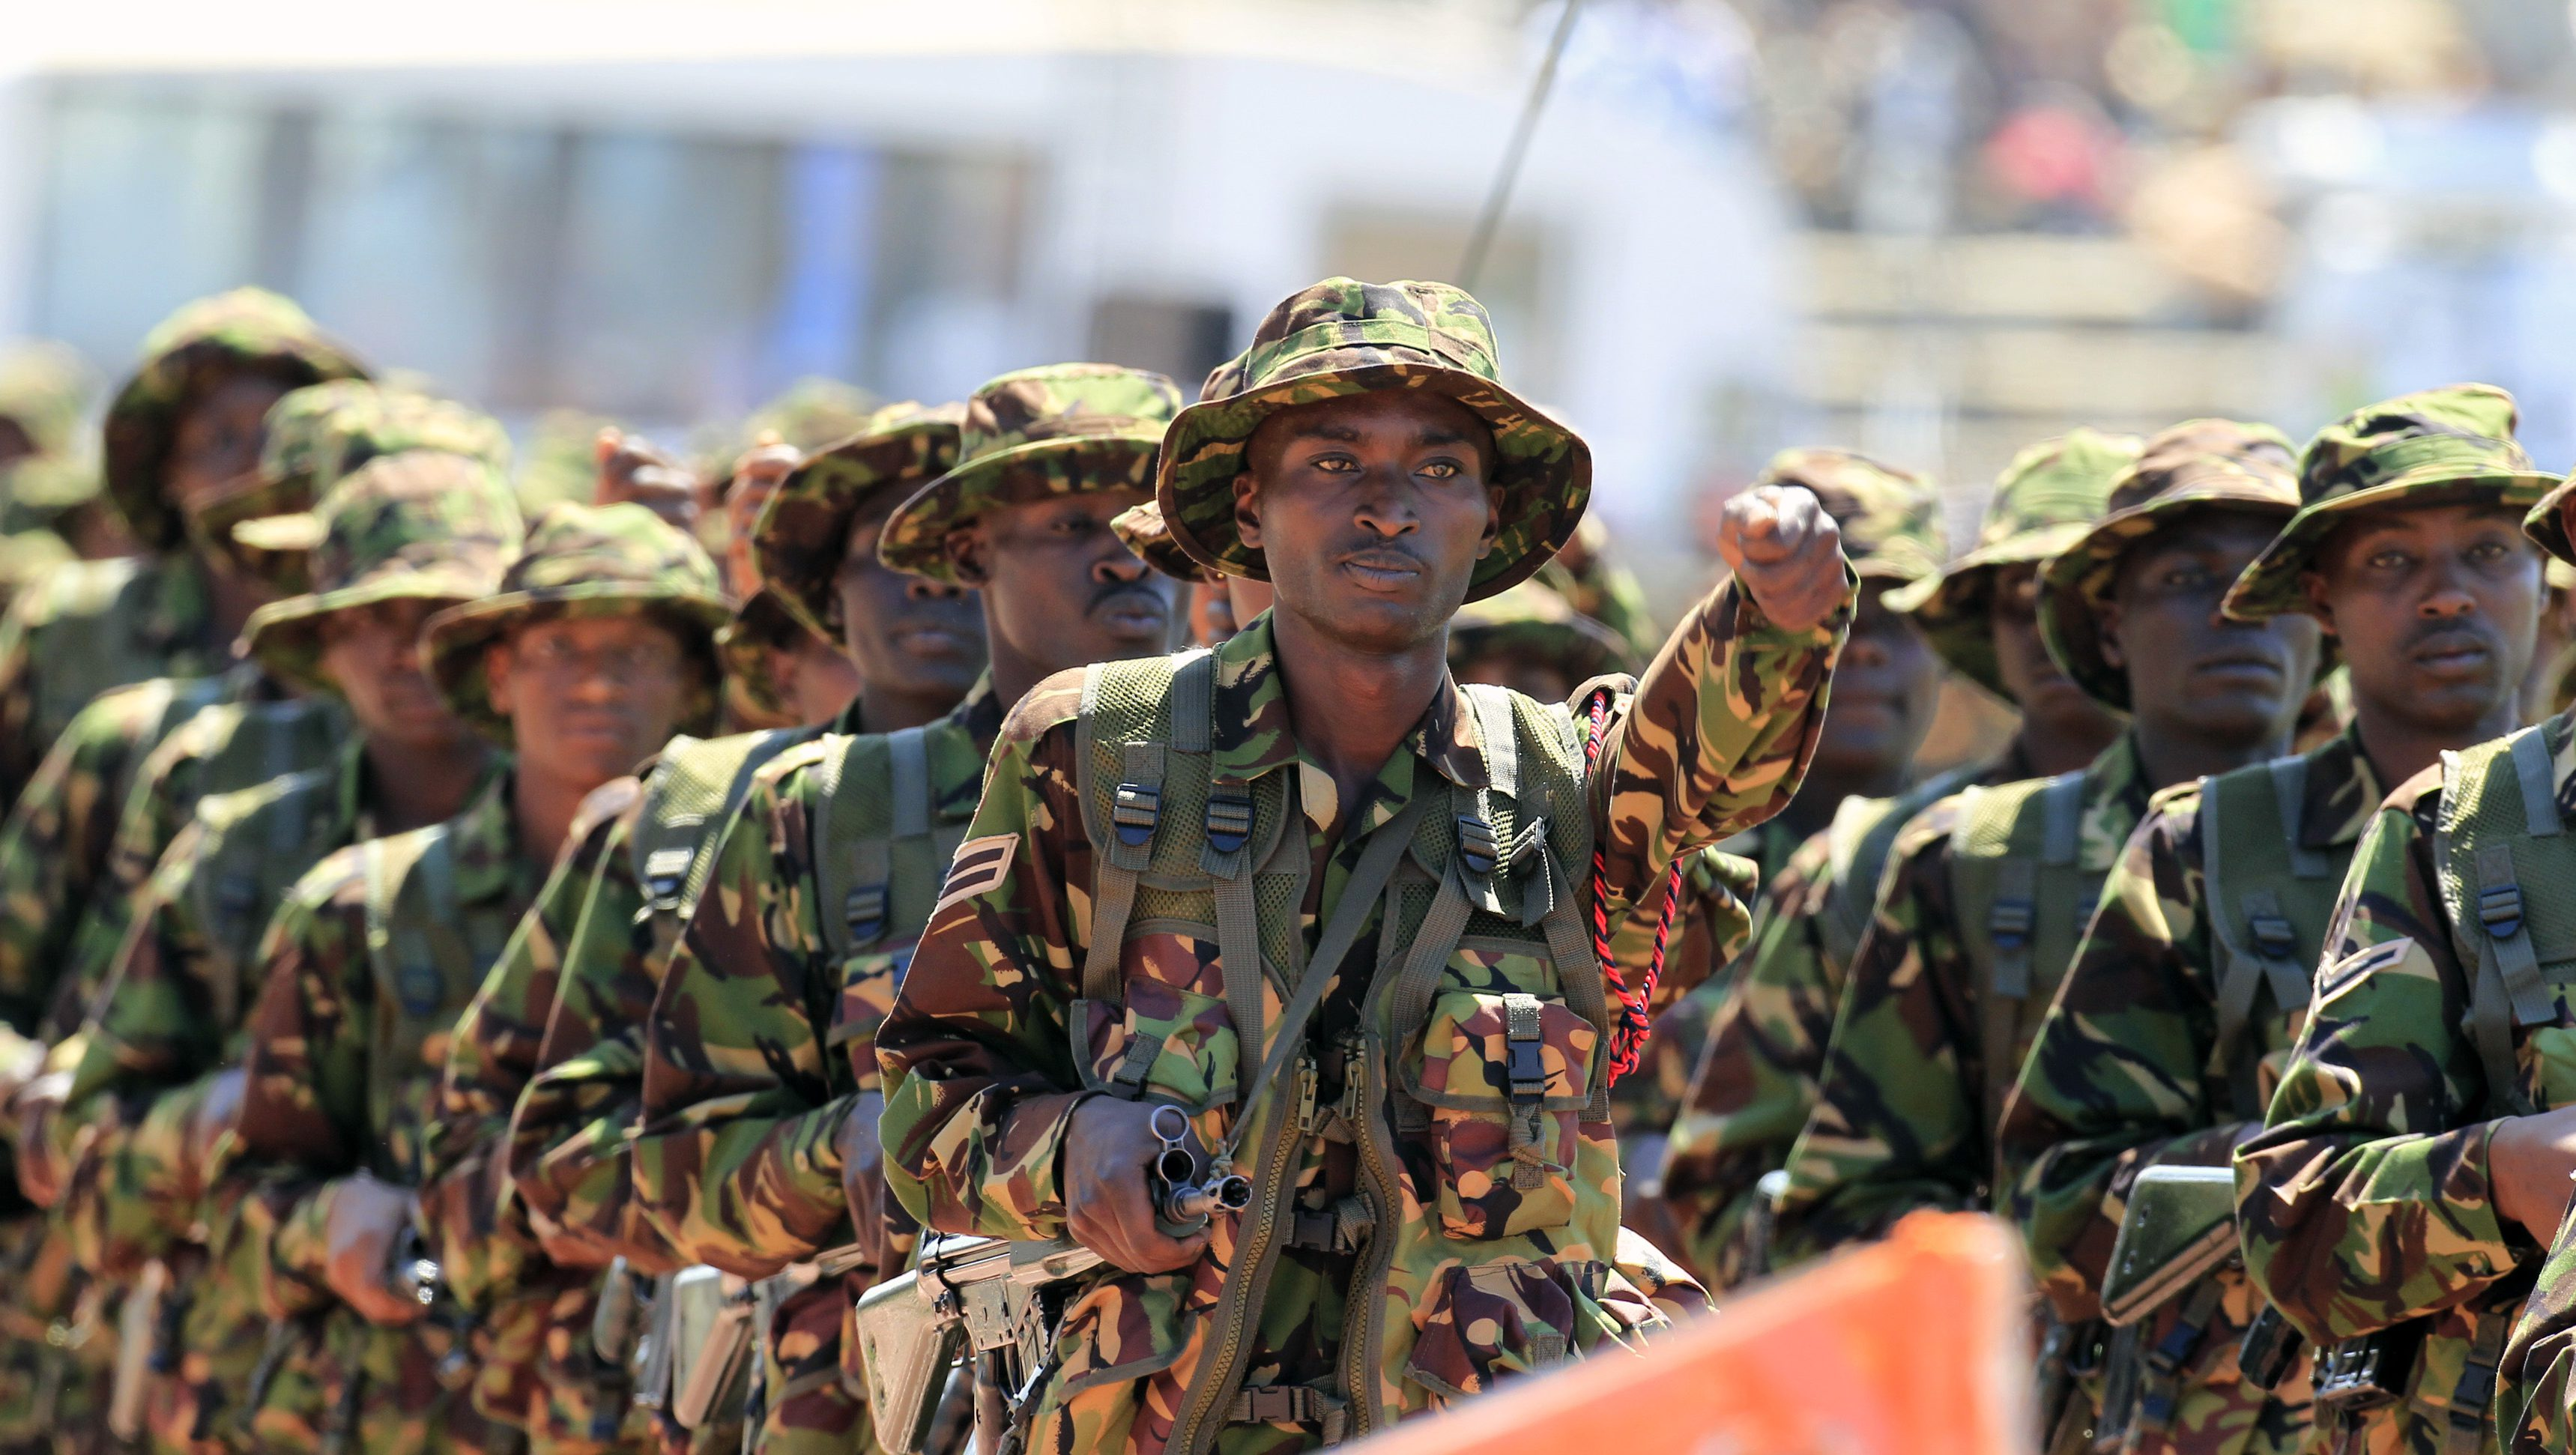 Kenyan soldiers march during celebrations to mark Kenya's Madaraka Day, the 51st anniversary of the country's independence, at Nyayo national stadium in Nairobi, June 1, 2014.